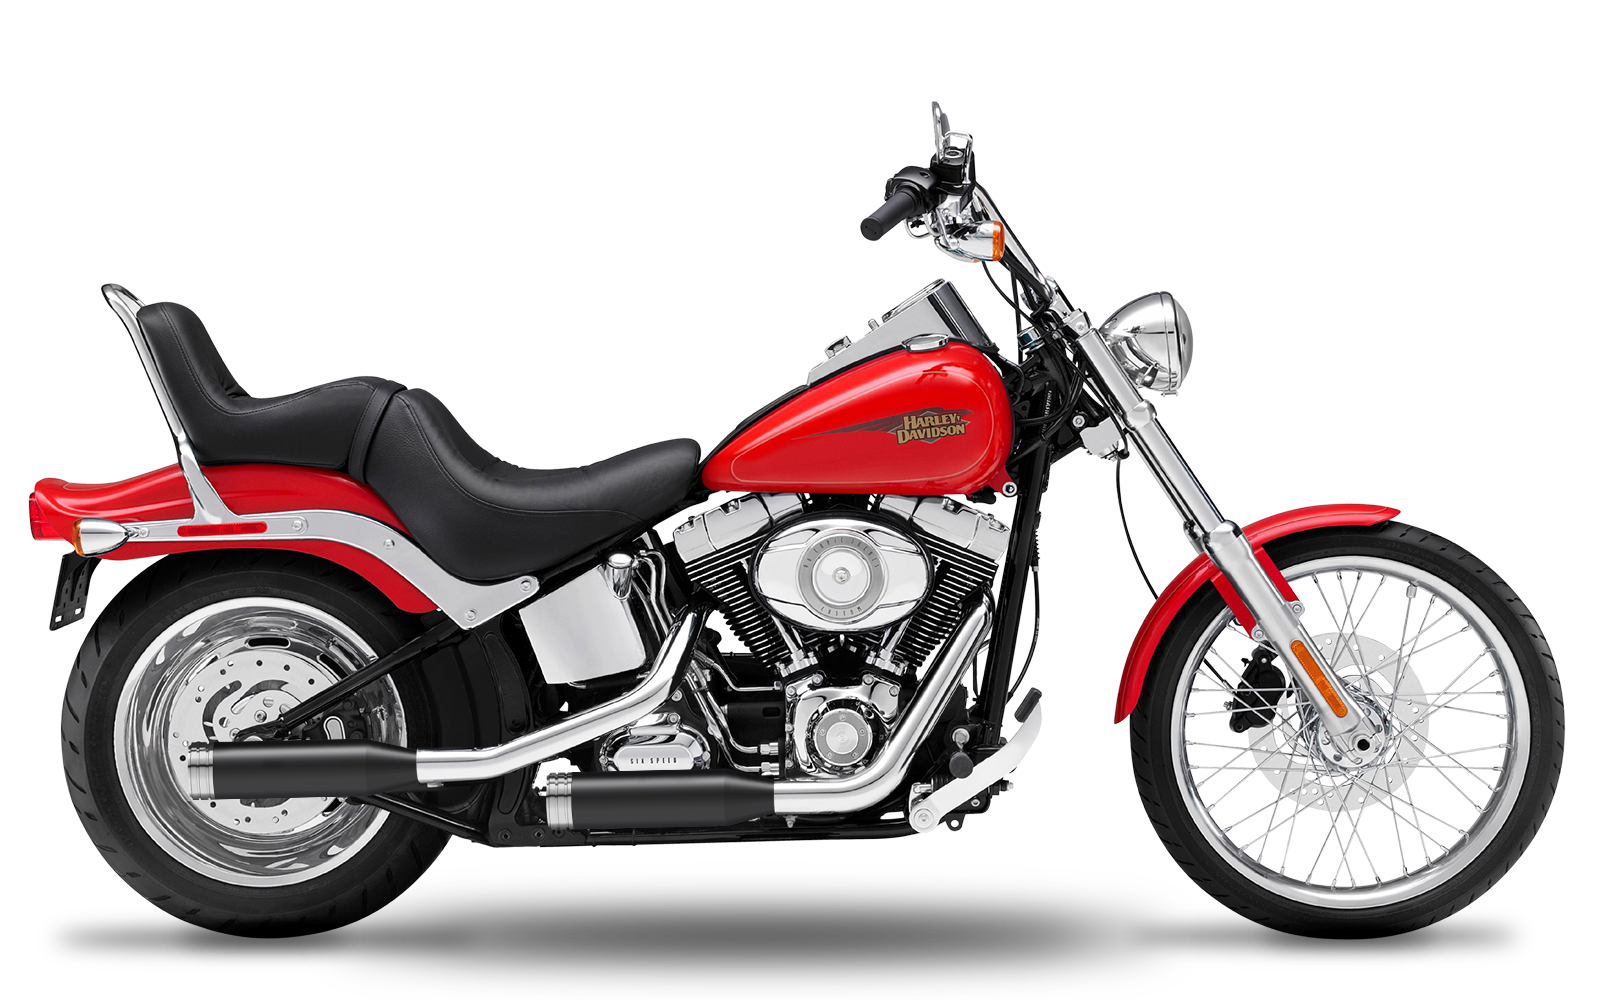 Softail - Standard - Evolution - -1999 - Endtöpfe